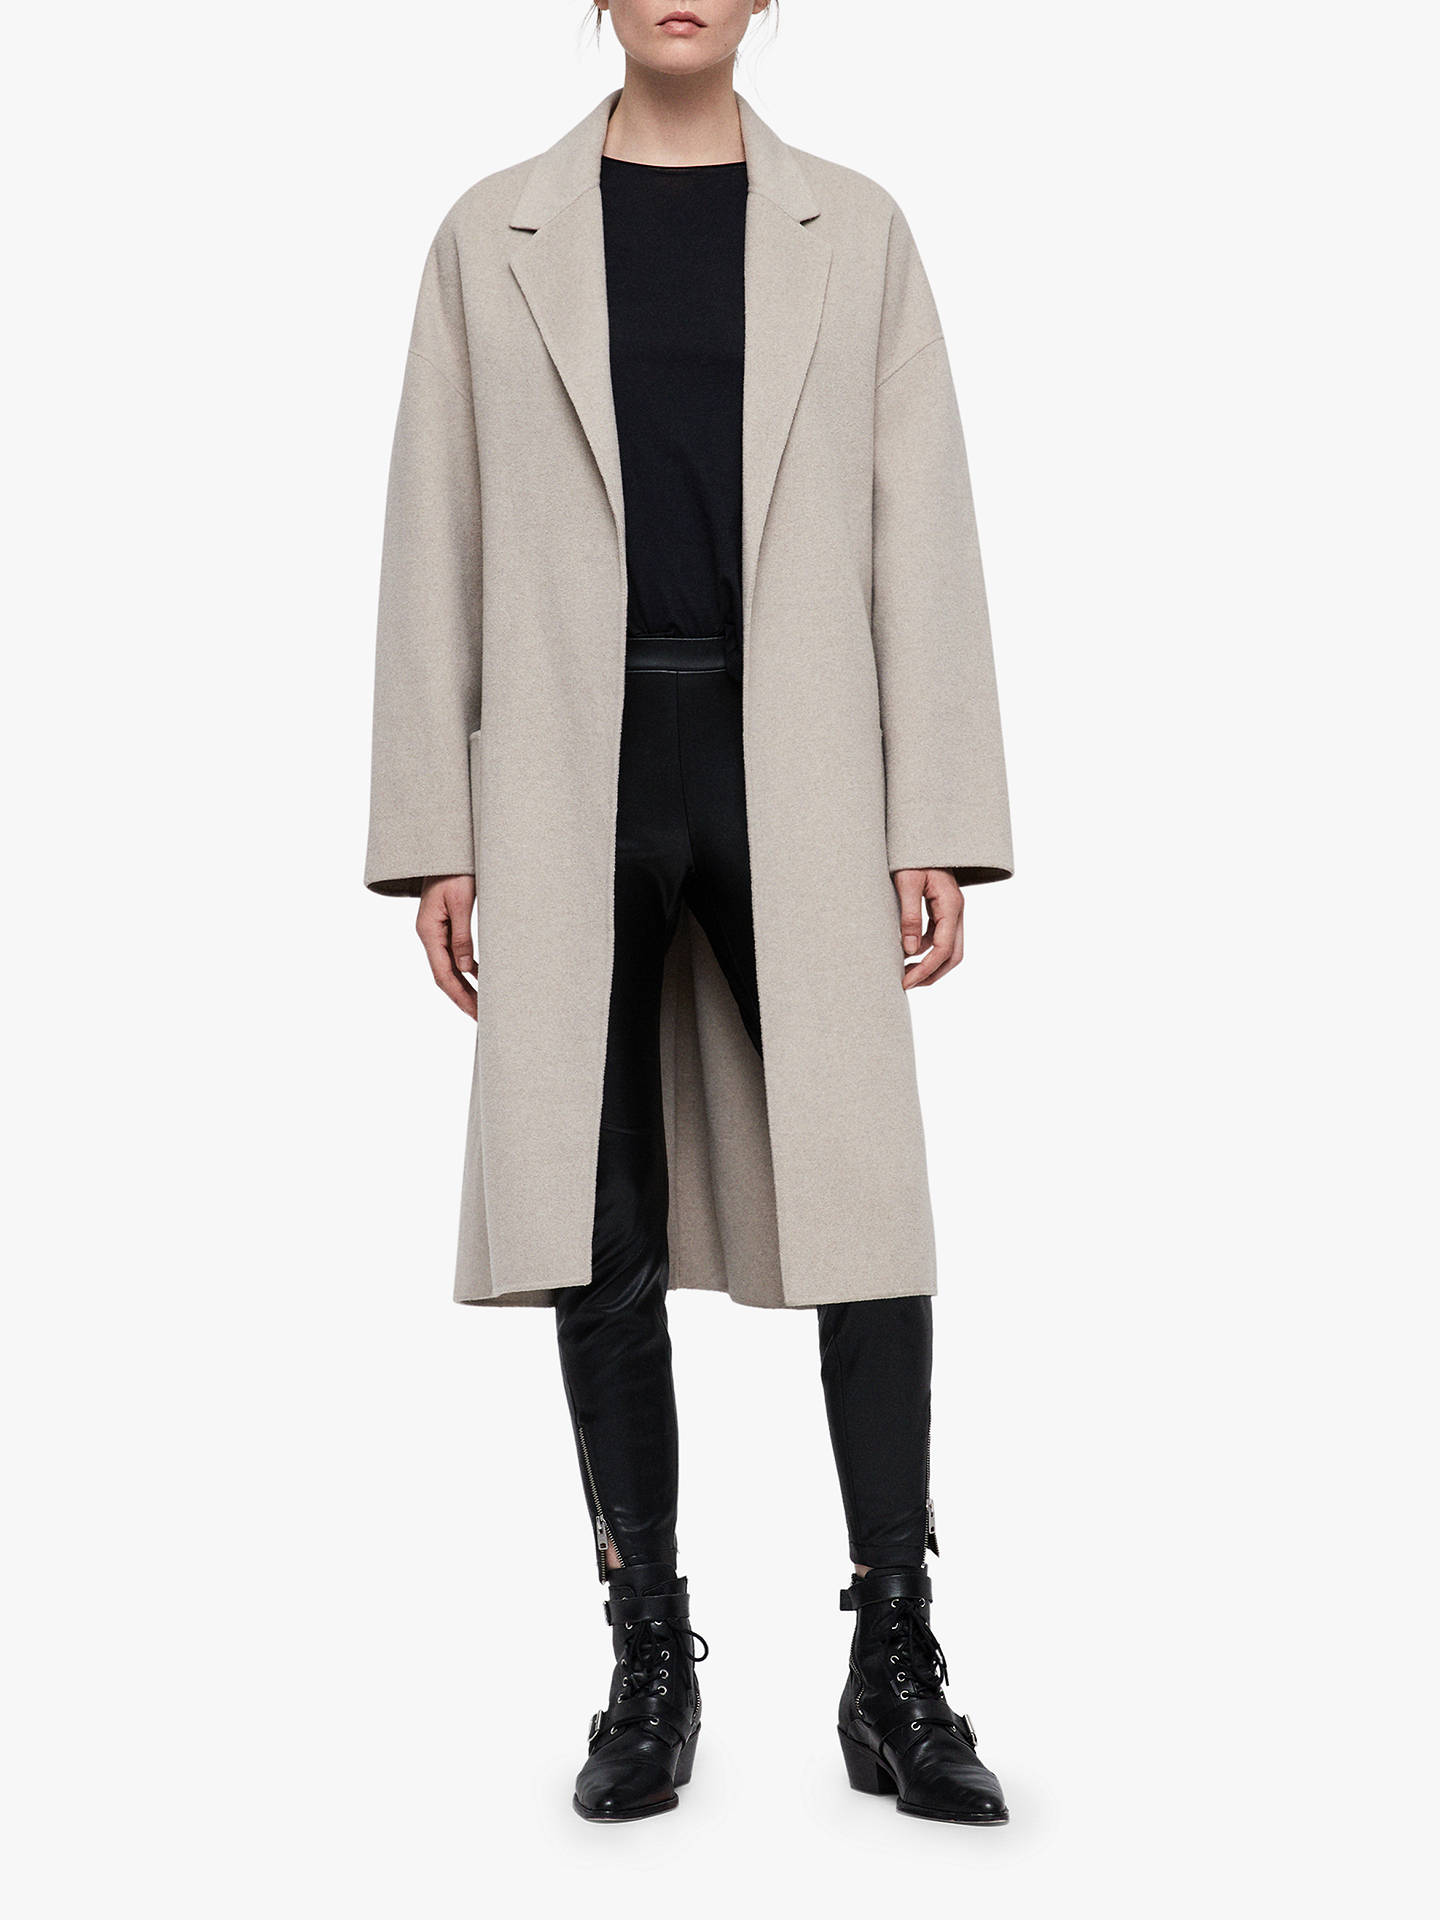 All Saints Lara Coat, Oatmeal Brown by All Saints